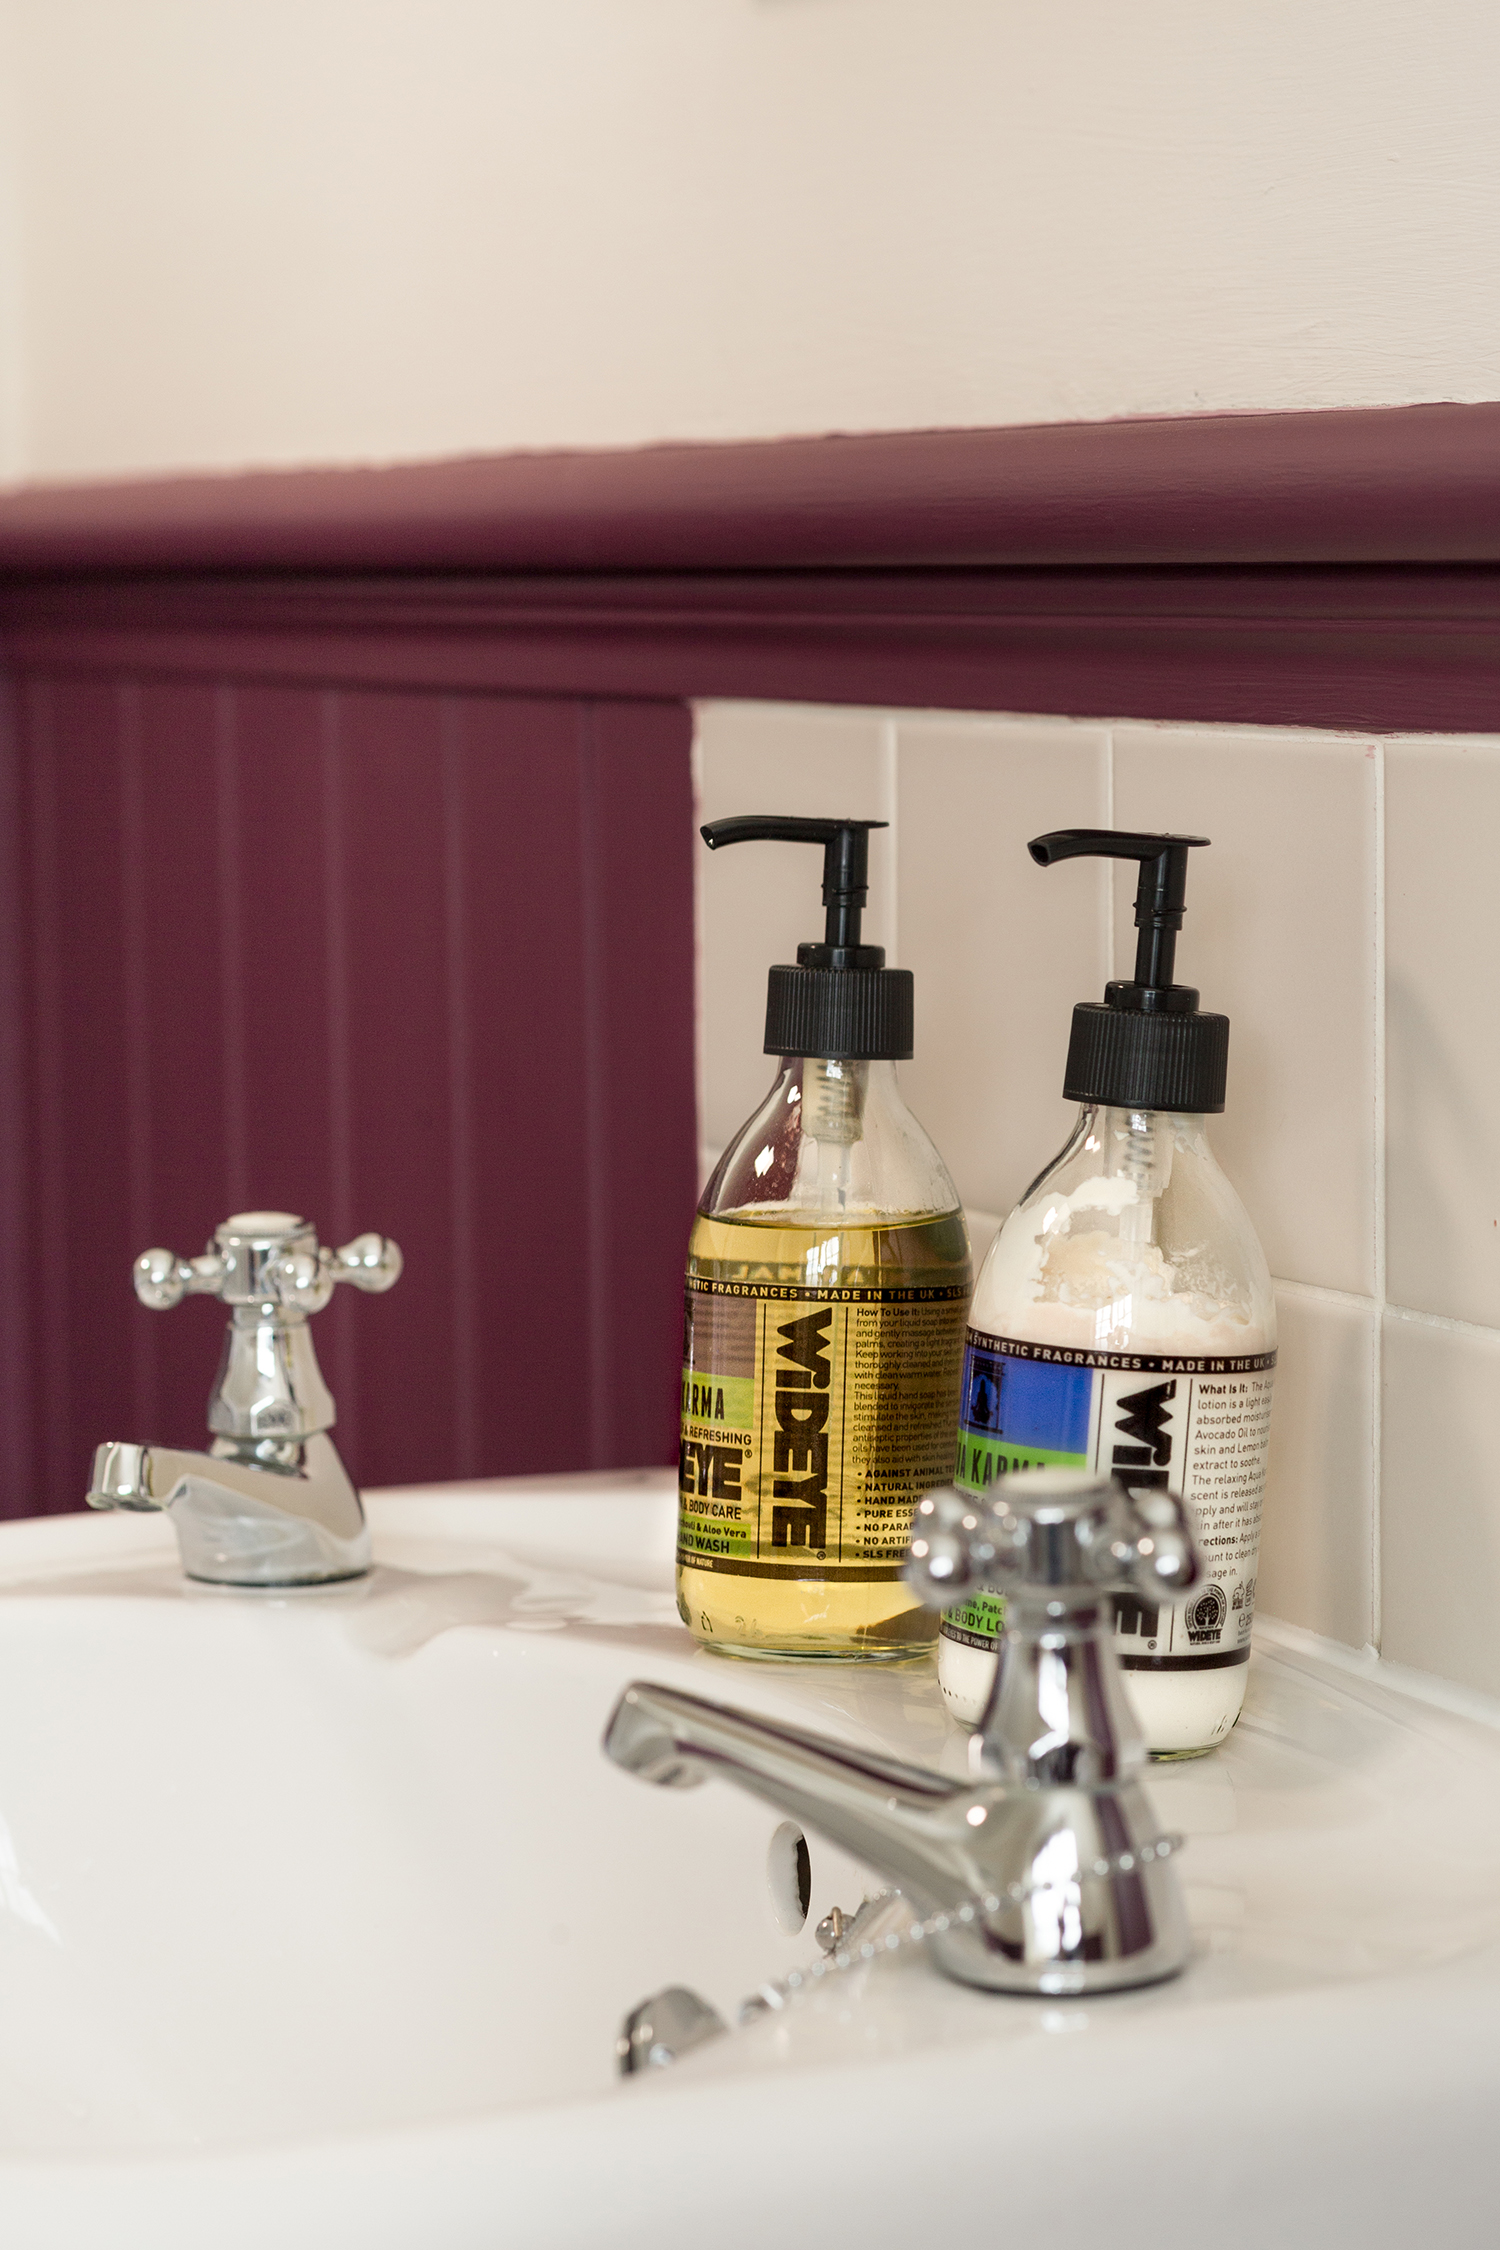 Close up of sink and products